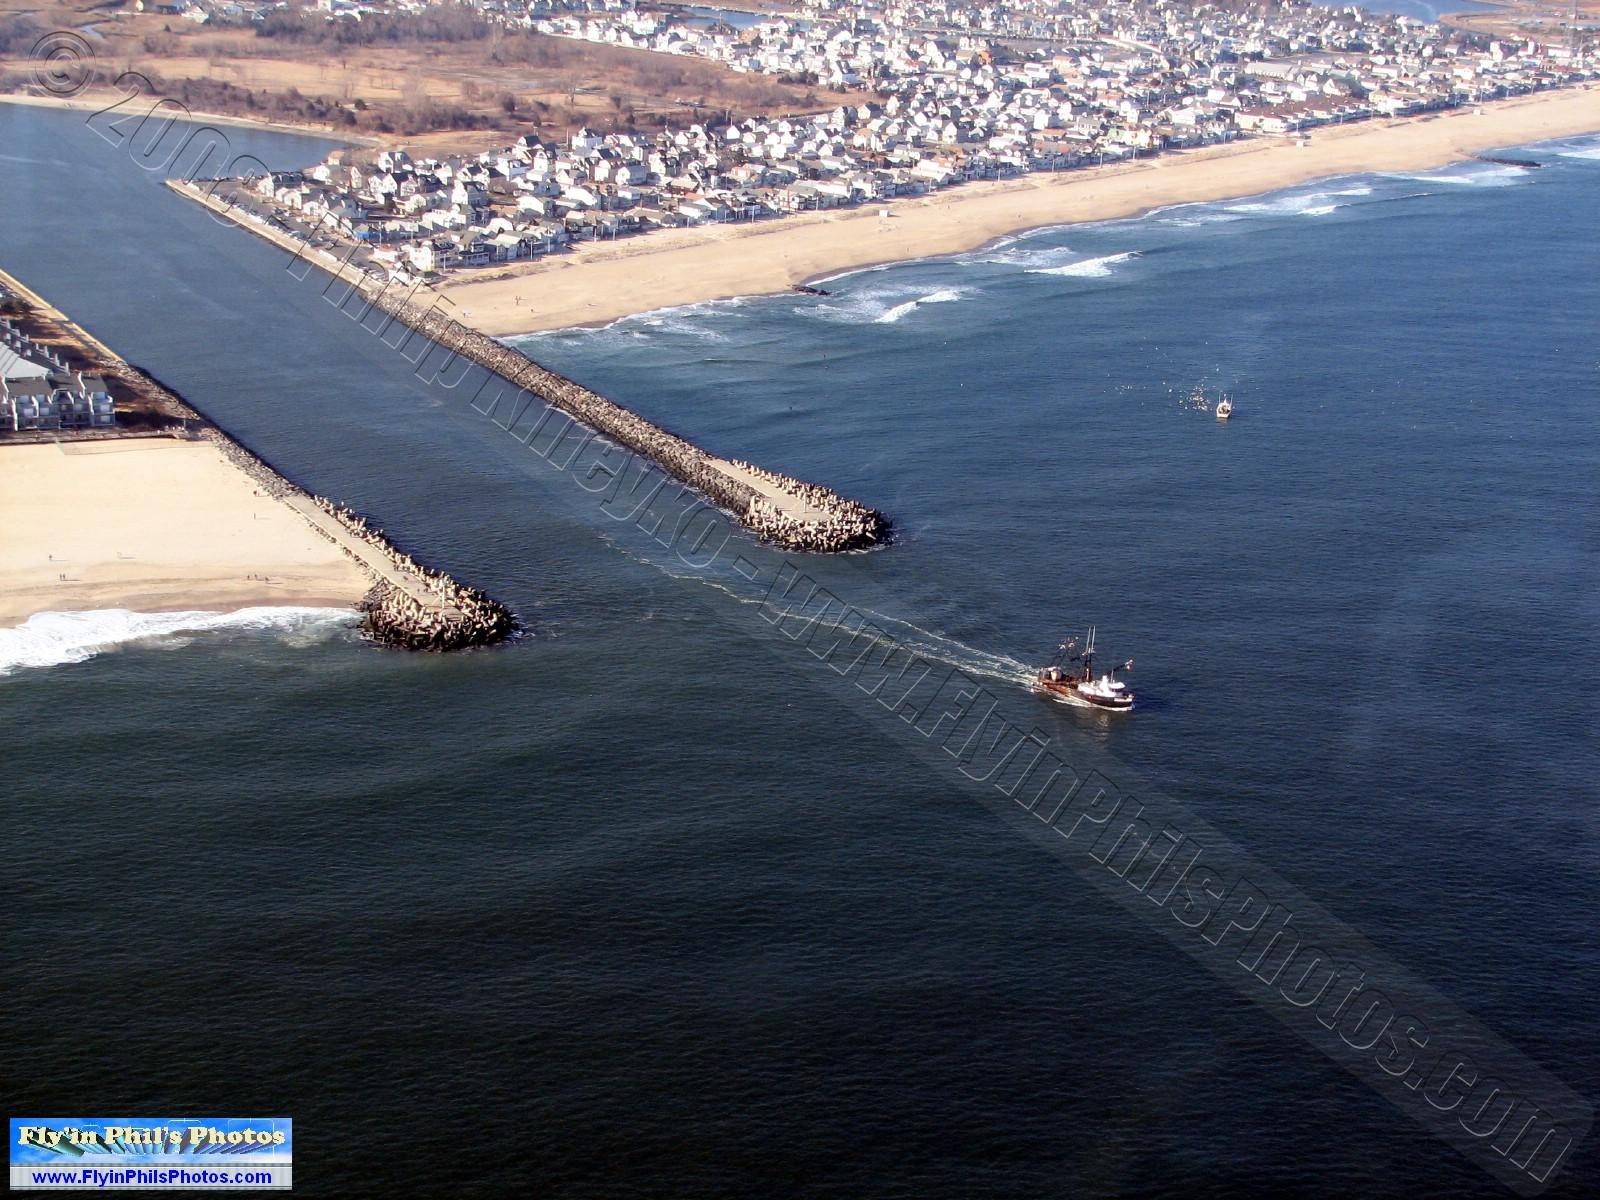 Flyin phils photos ocean shorelines aerial photo search page 0058 manasquan nvjuhfo Image collections